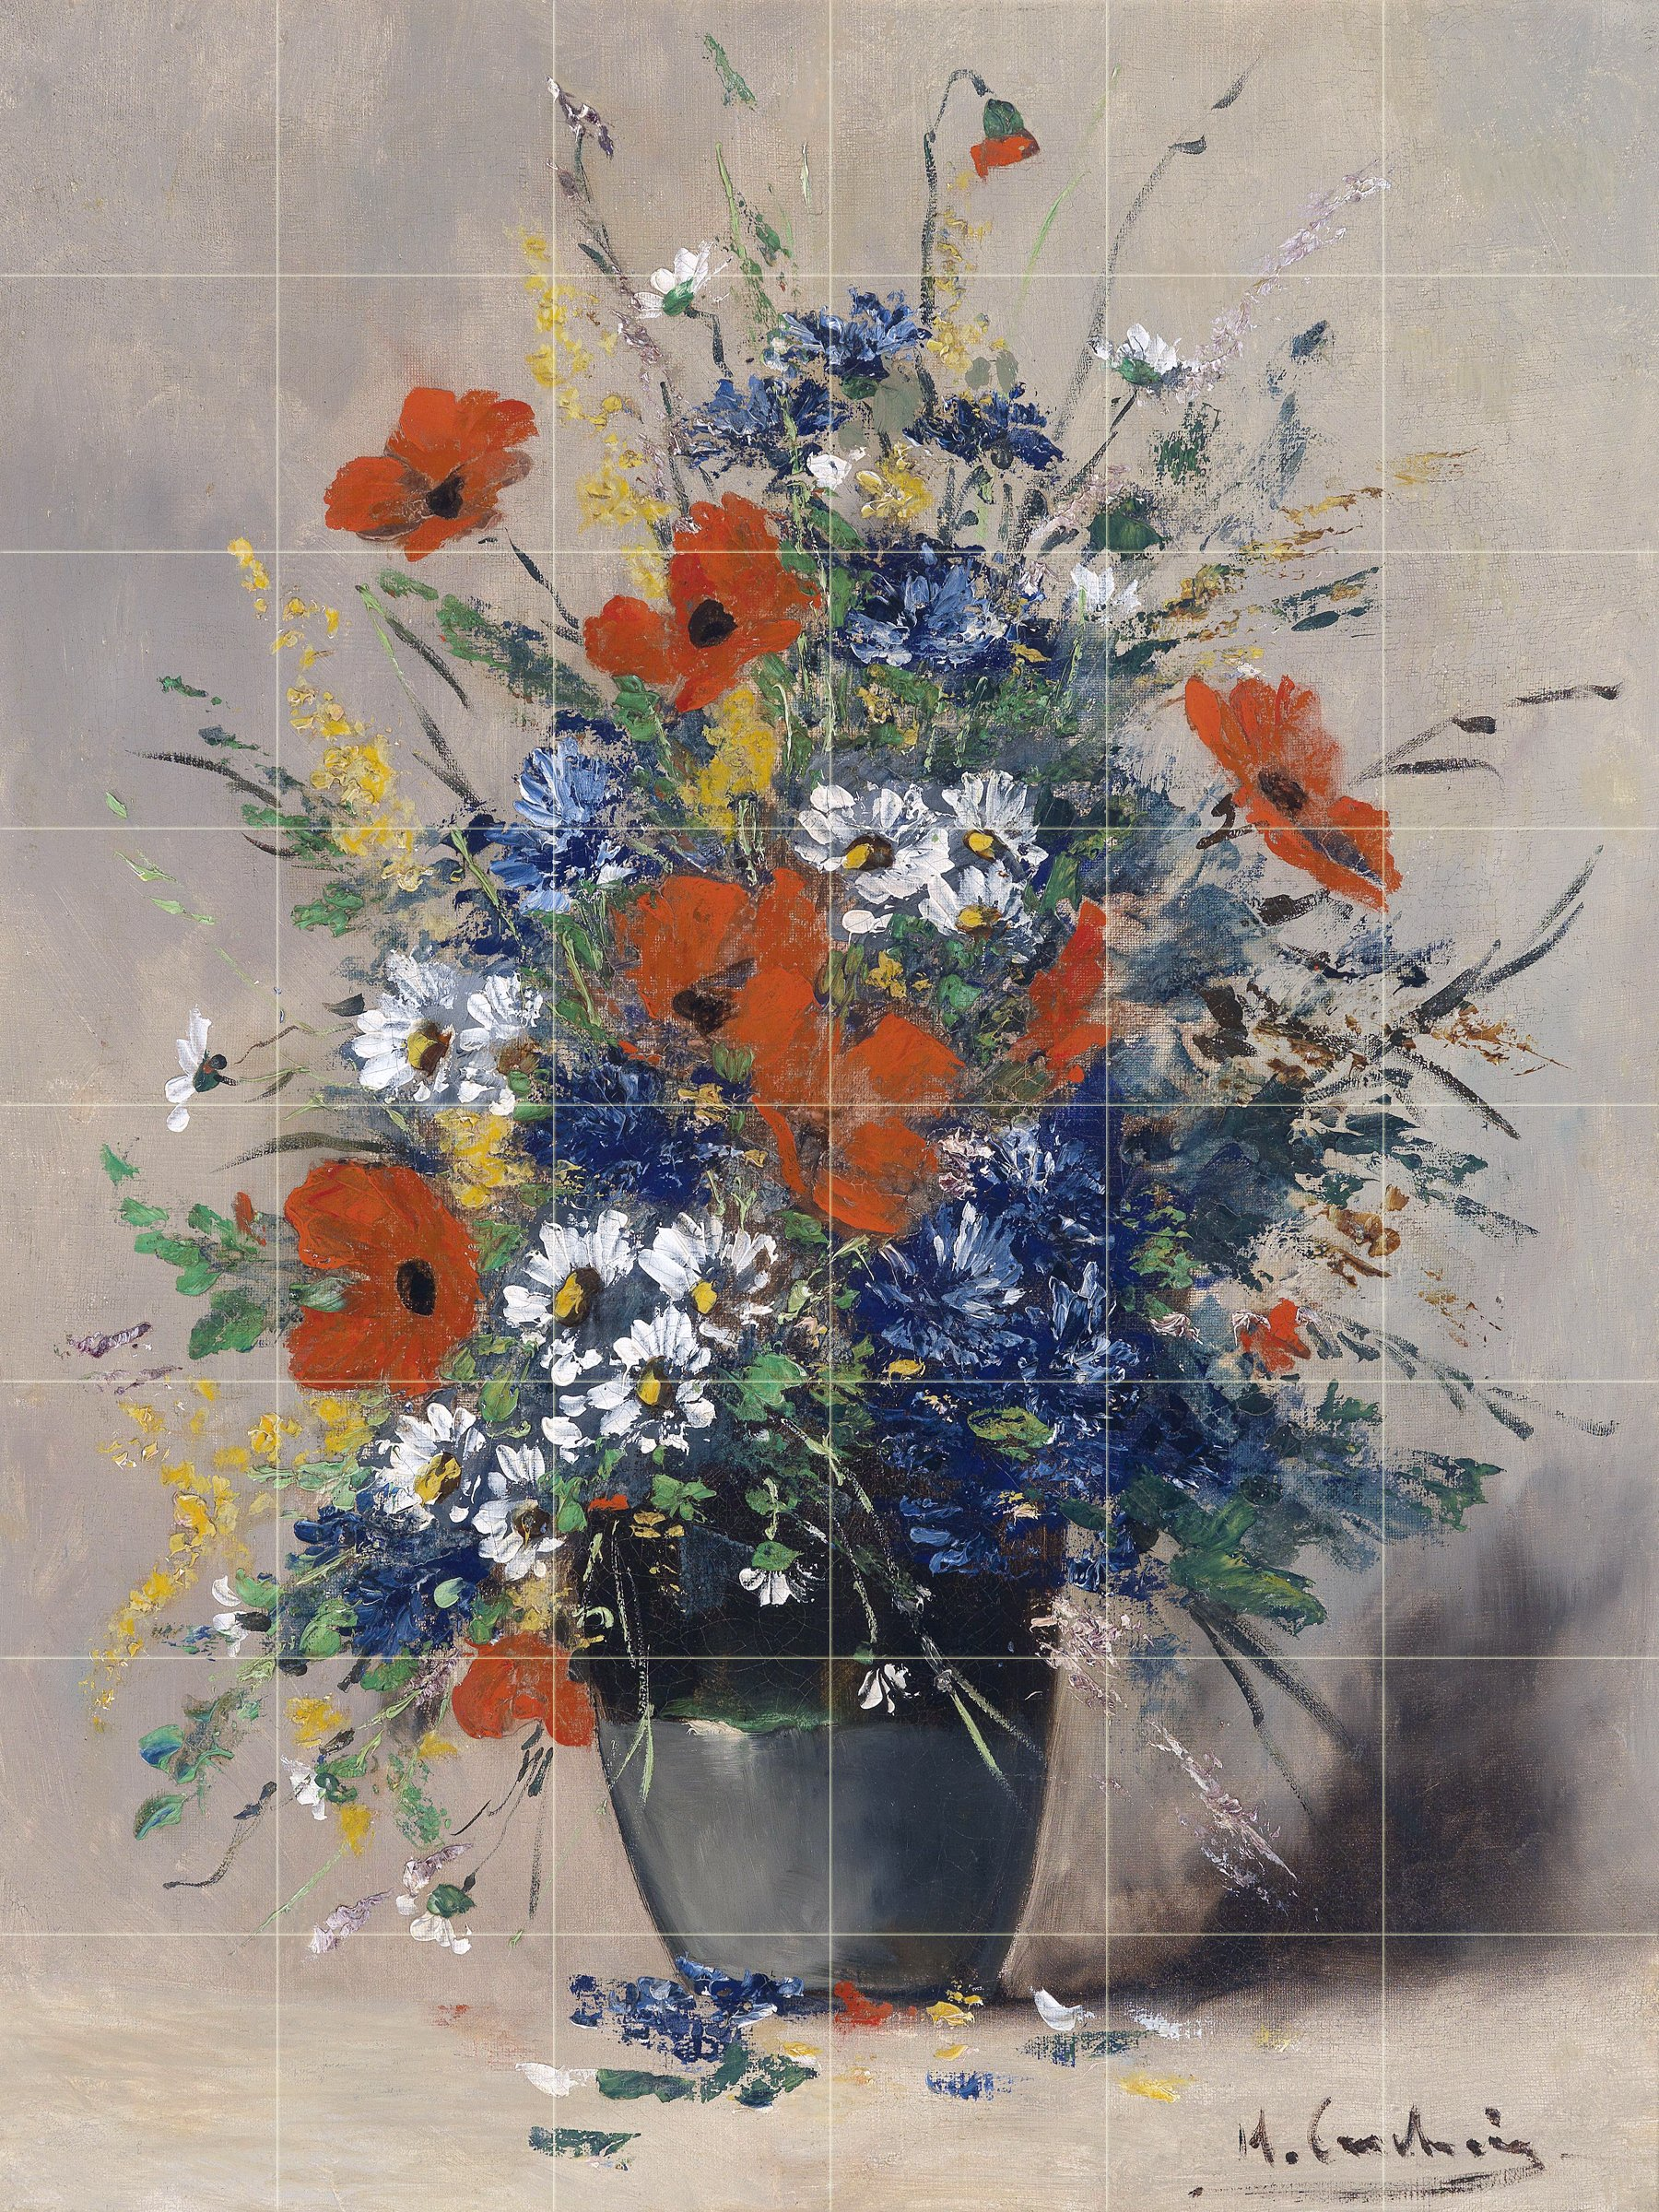 Still life of summer flowers in a vase of daisies poppies cornflowers by Eugene Henri Cauchois Tile Mural Kitchen Bathroom Wall Backsplash Behind Stove Range Sink Splashback 6x8 4'' Marble, Matte